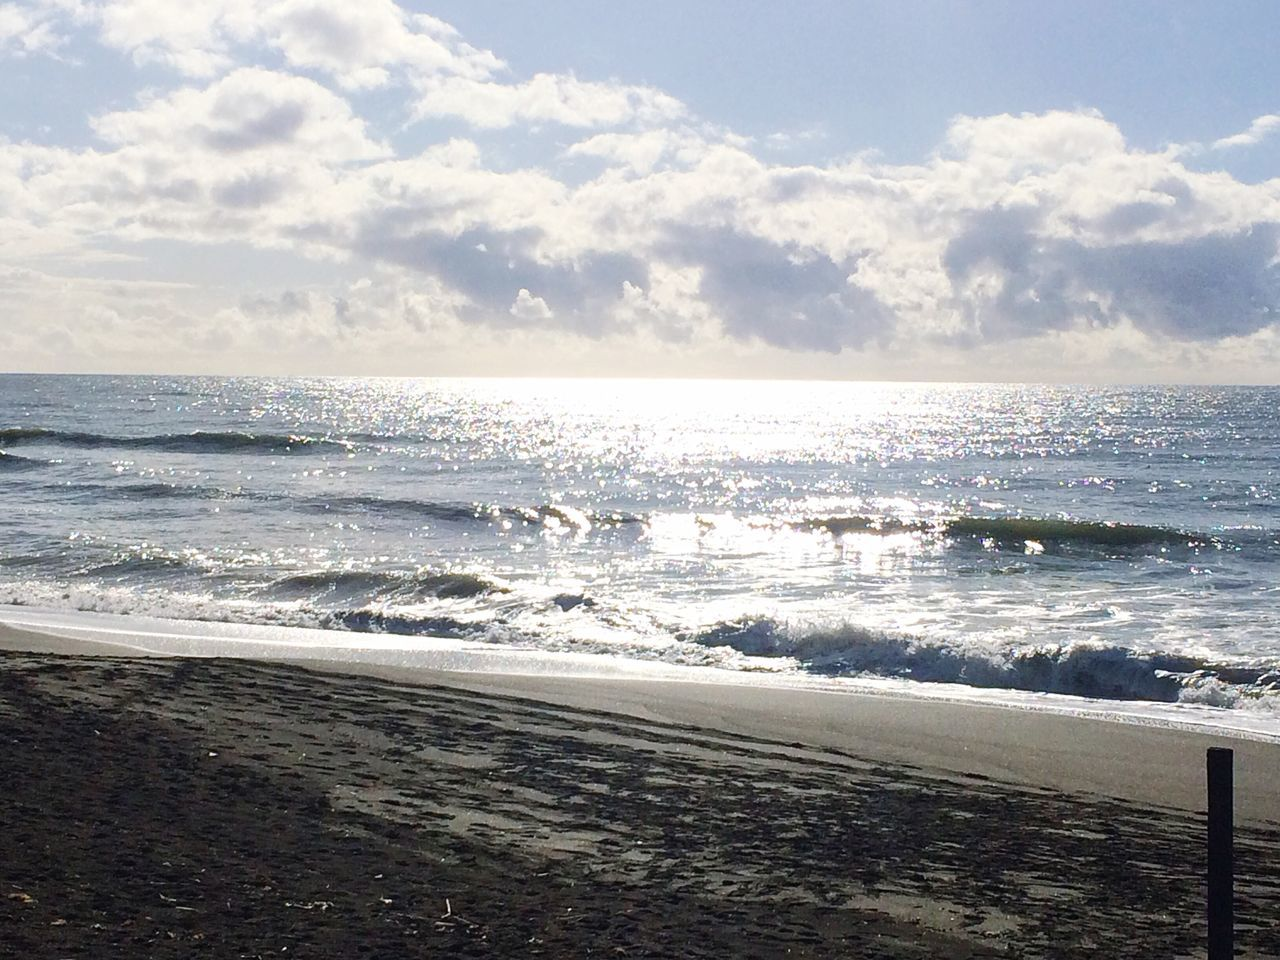 Morning Light Morning Sky December Morning Rome Italy Feeling Thankful Feelingblessed Happiness Relaxing Sea Beach Horizon Over Water Nature Water Wave Sky Scenics Surf Beauty In Nature Tranquil Scene Cloud - Sky Tranquility Travel Destinations Outdoors No People Sand Day Tide